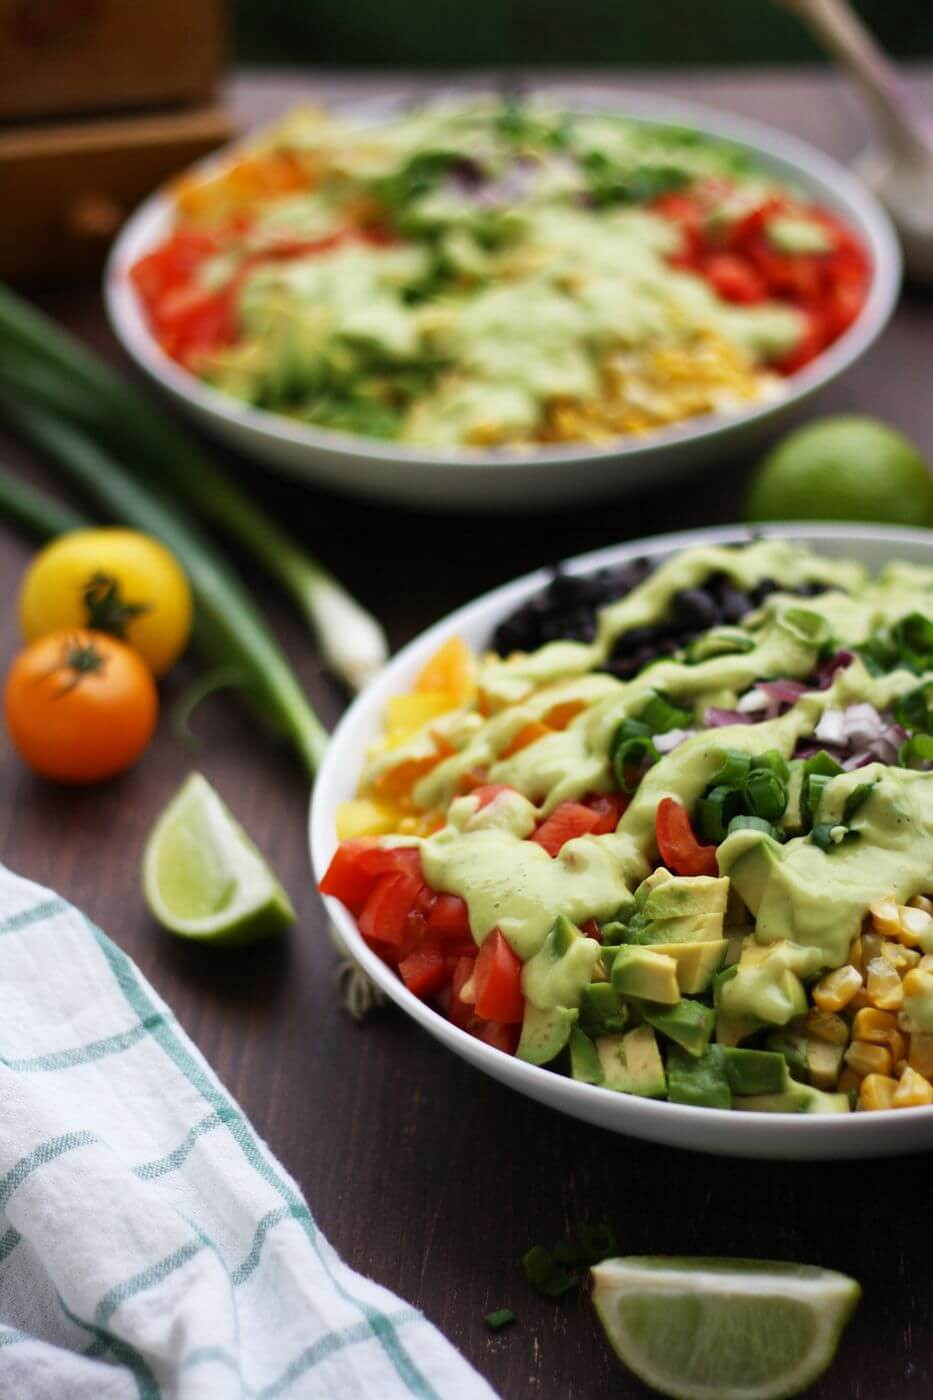 ingredients of Vegan Mexican Chopped Salad with Avocado Dressing on white plates